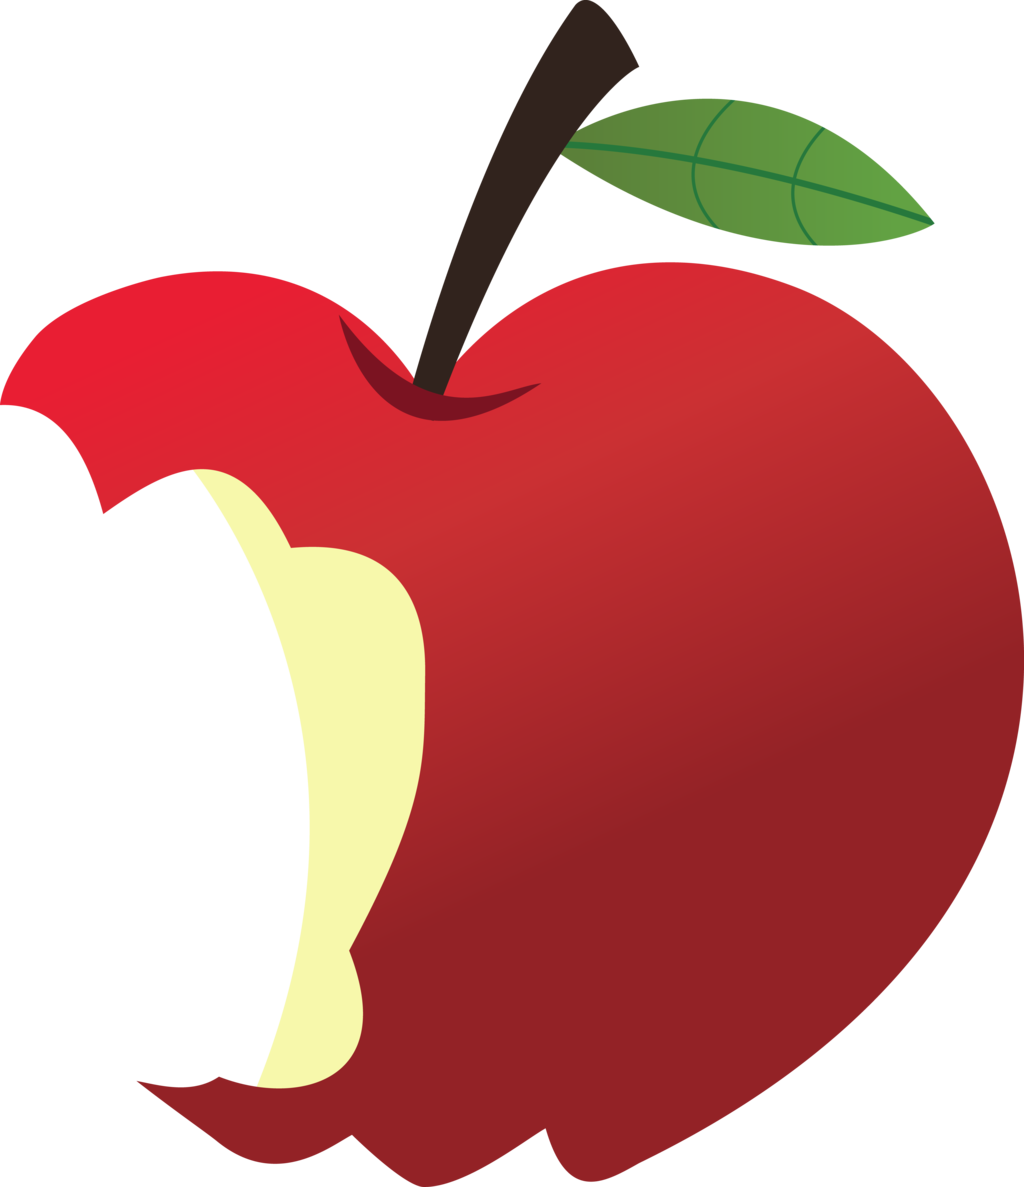 Number one apple clipart jpg freeuse Bitten Apple Clipart - Imagens de clip art gratuitas | PINTURA EM ... jpg freeuse